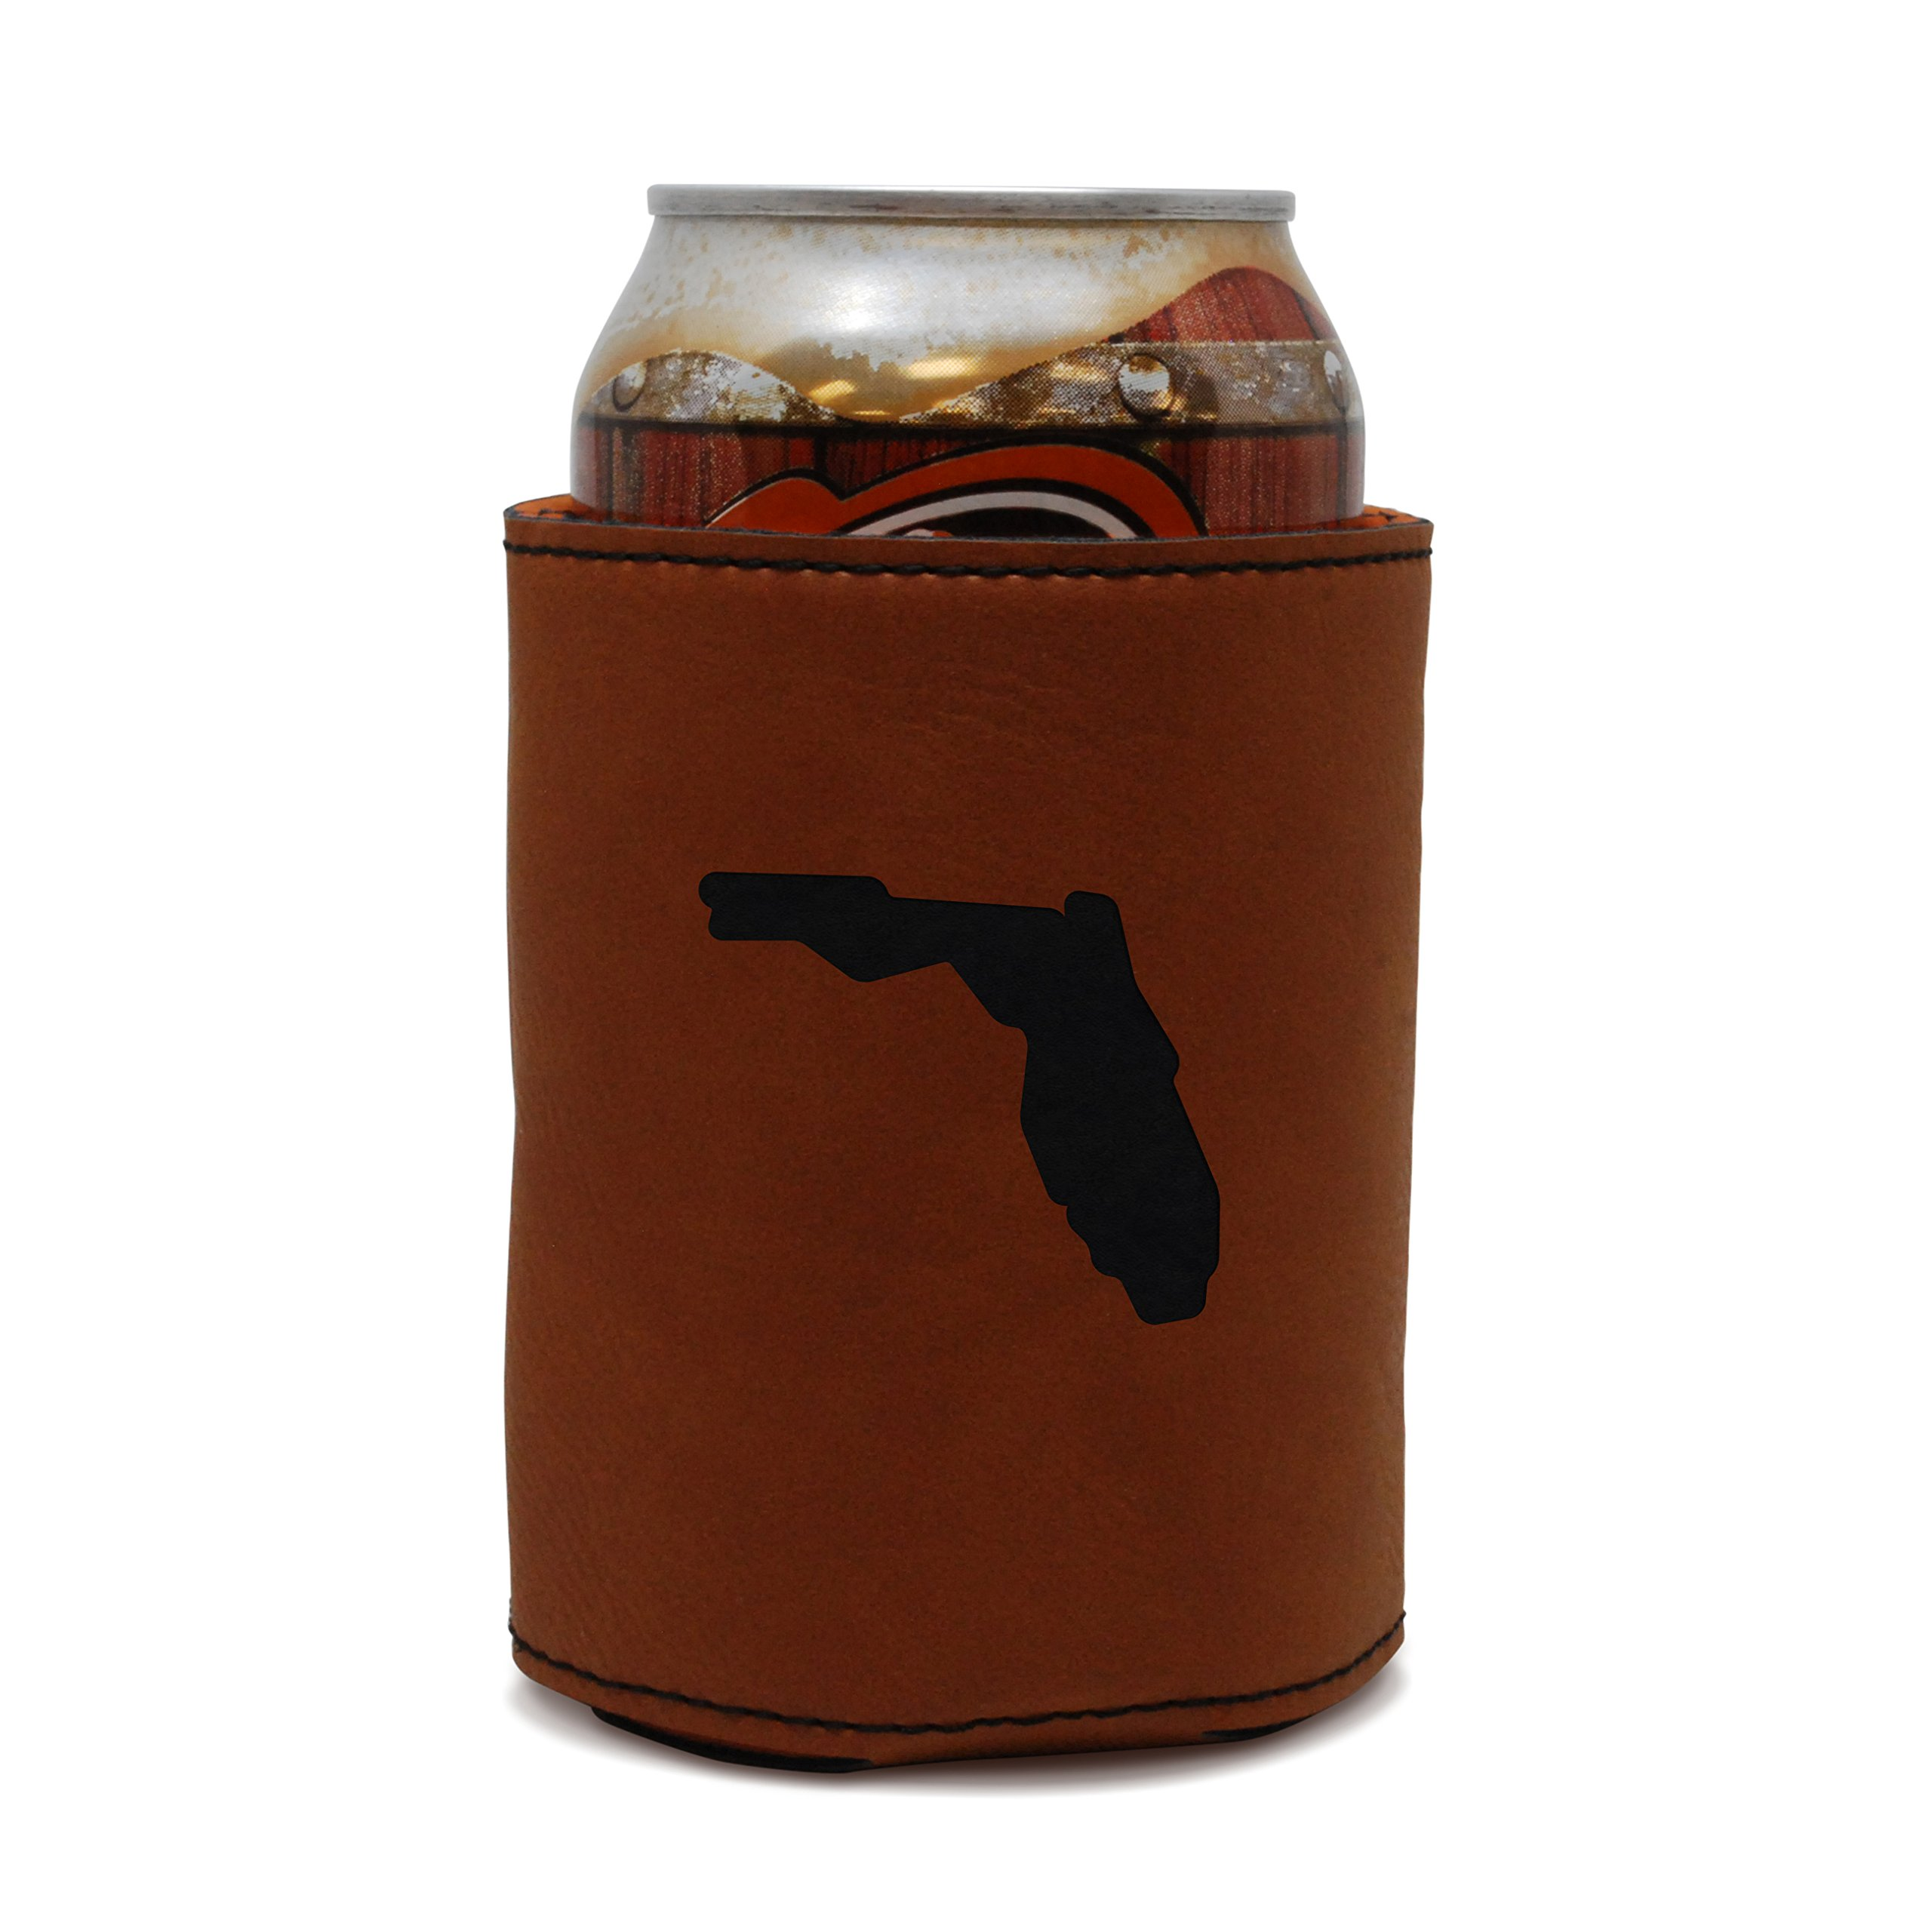 Florida Beer Cans